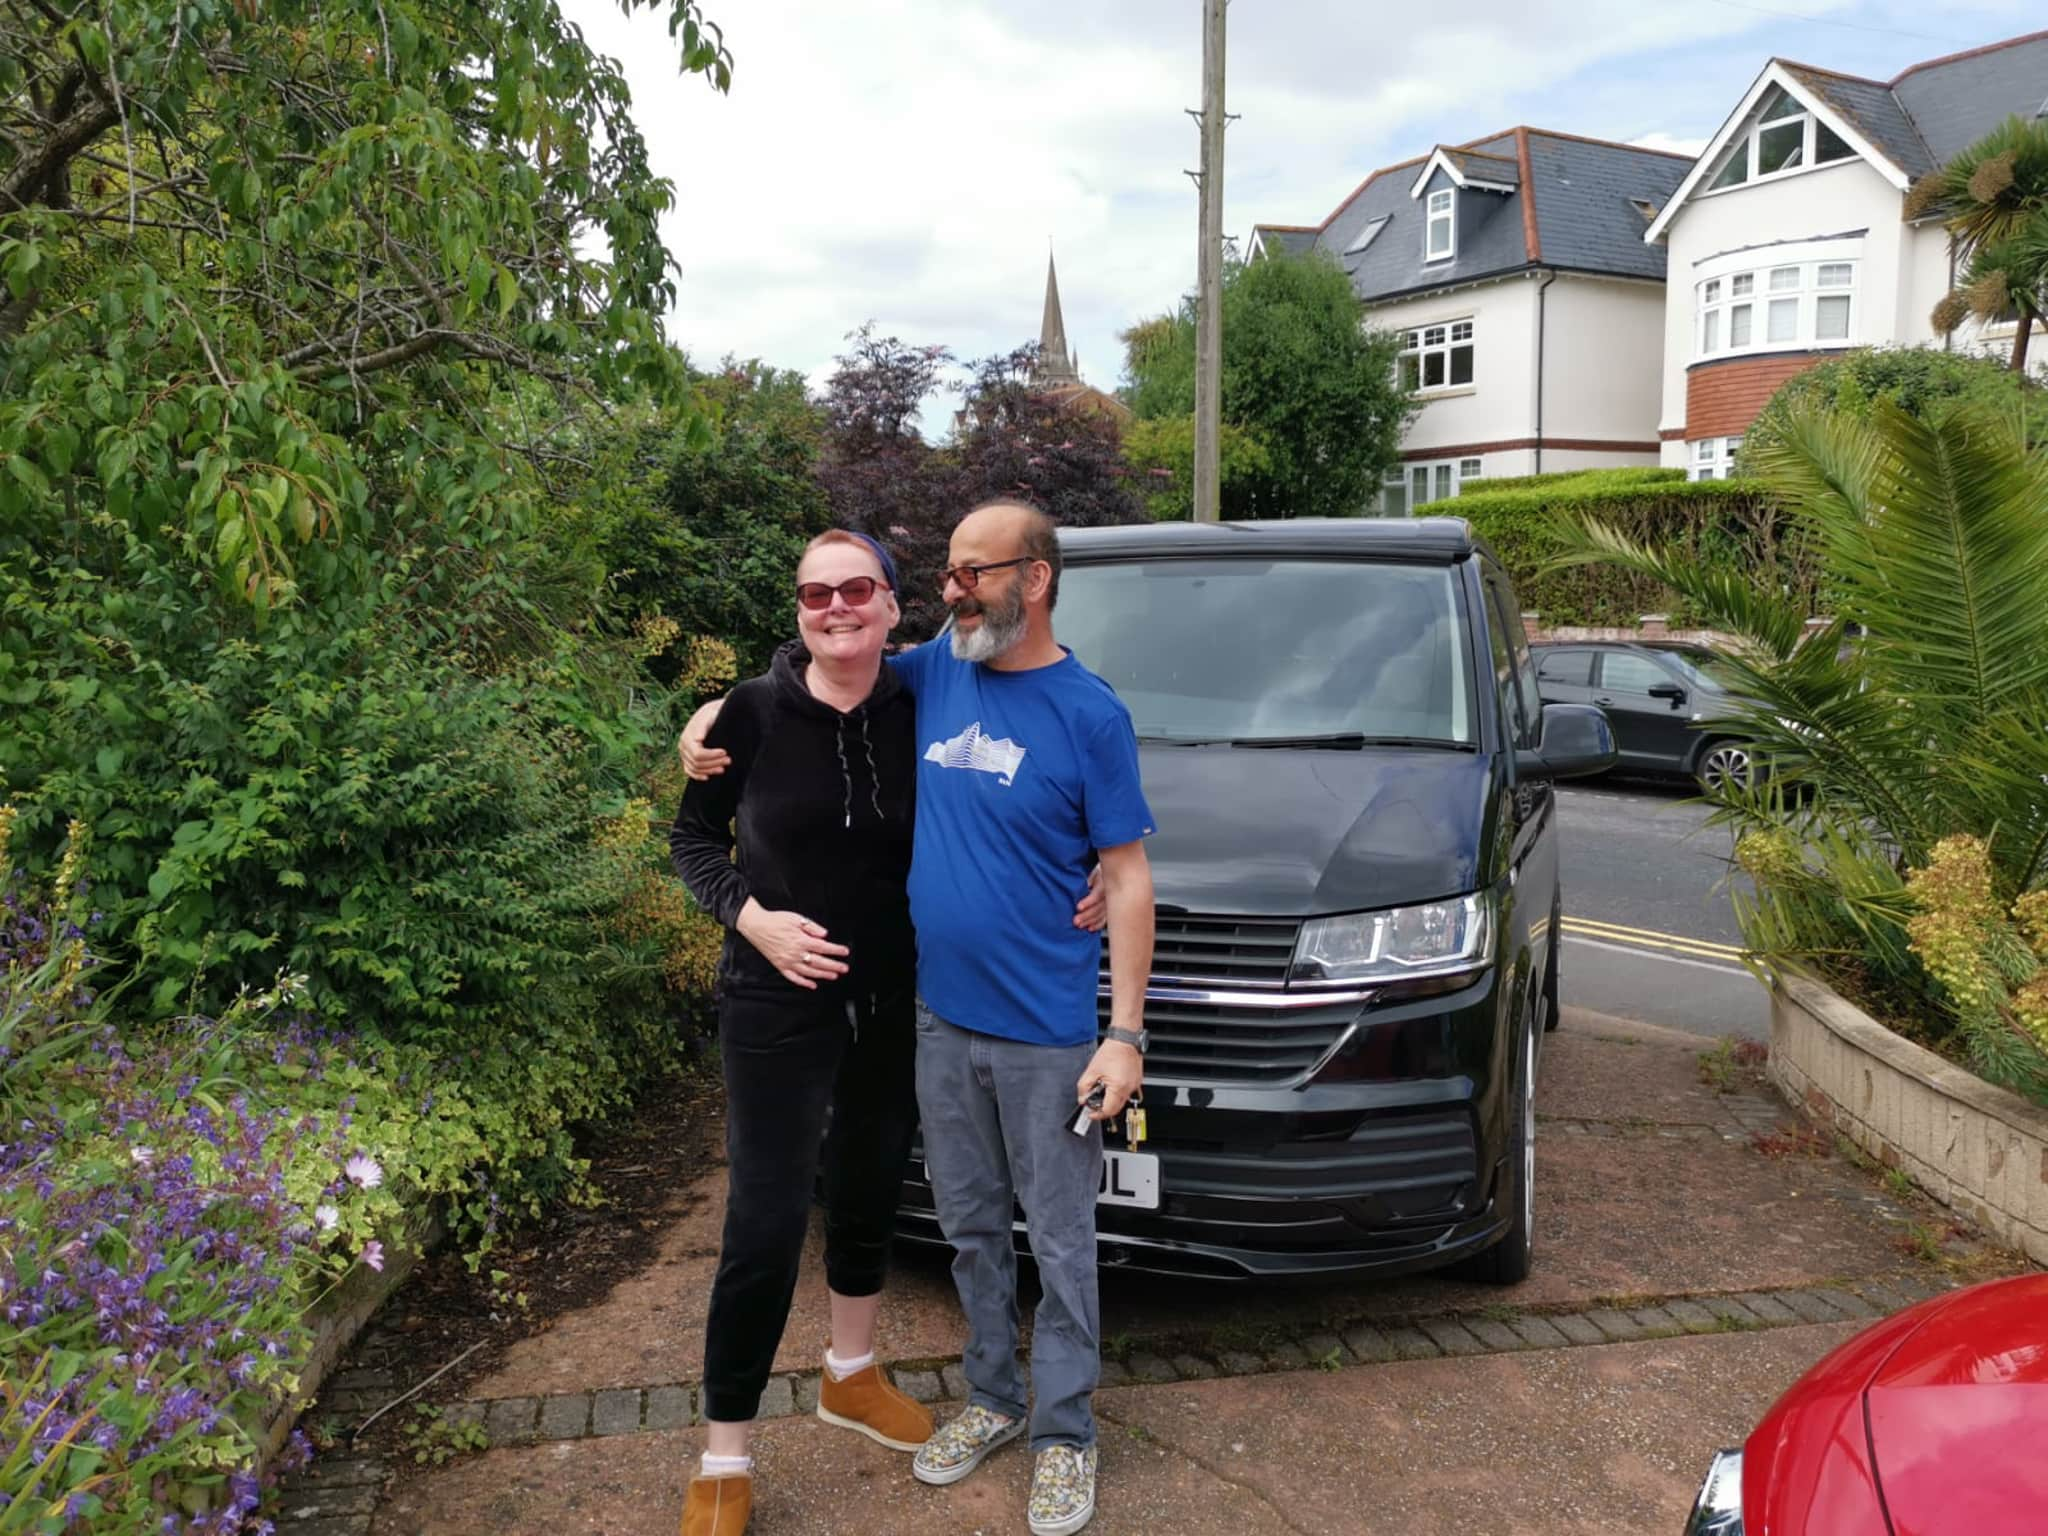 Winner michael aronsohn of a VW T6.1 Off Grid Camper with pop top roof - 21st June